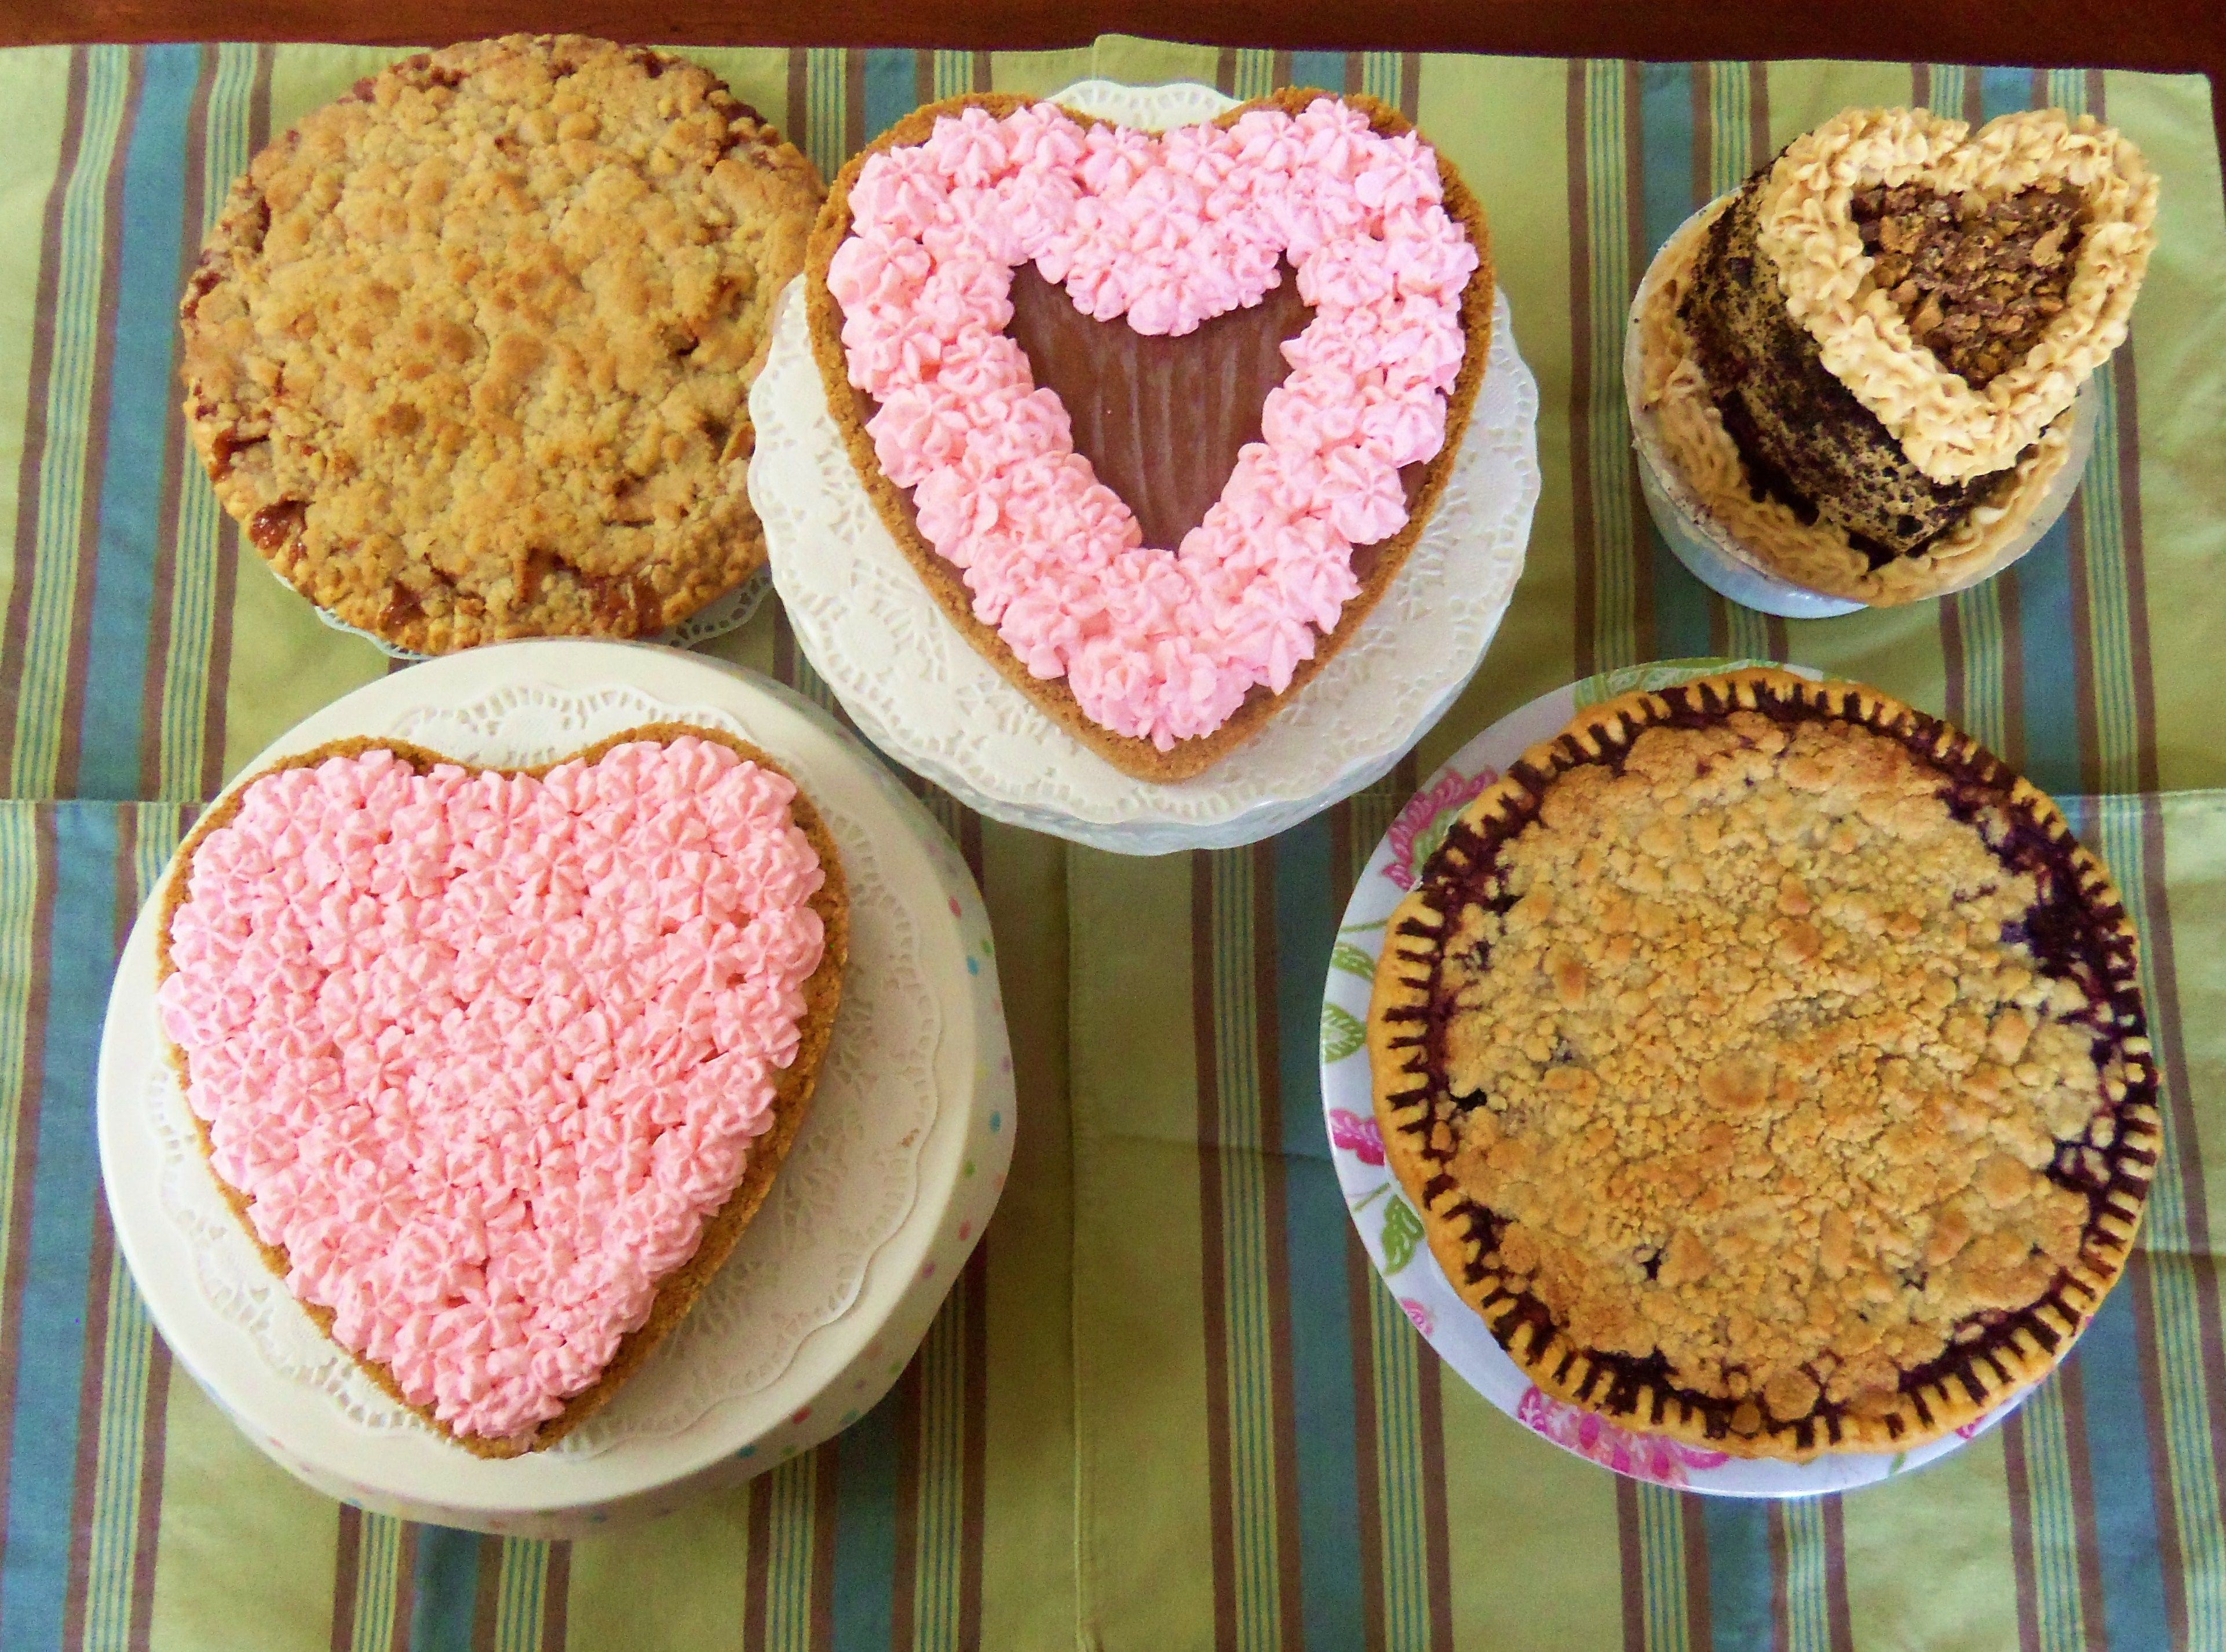 Pin by Monica Freyre-Murphy on Eat*Crave*Love-baking co. | Pinterest